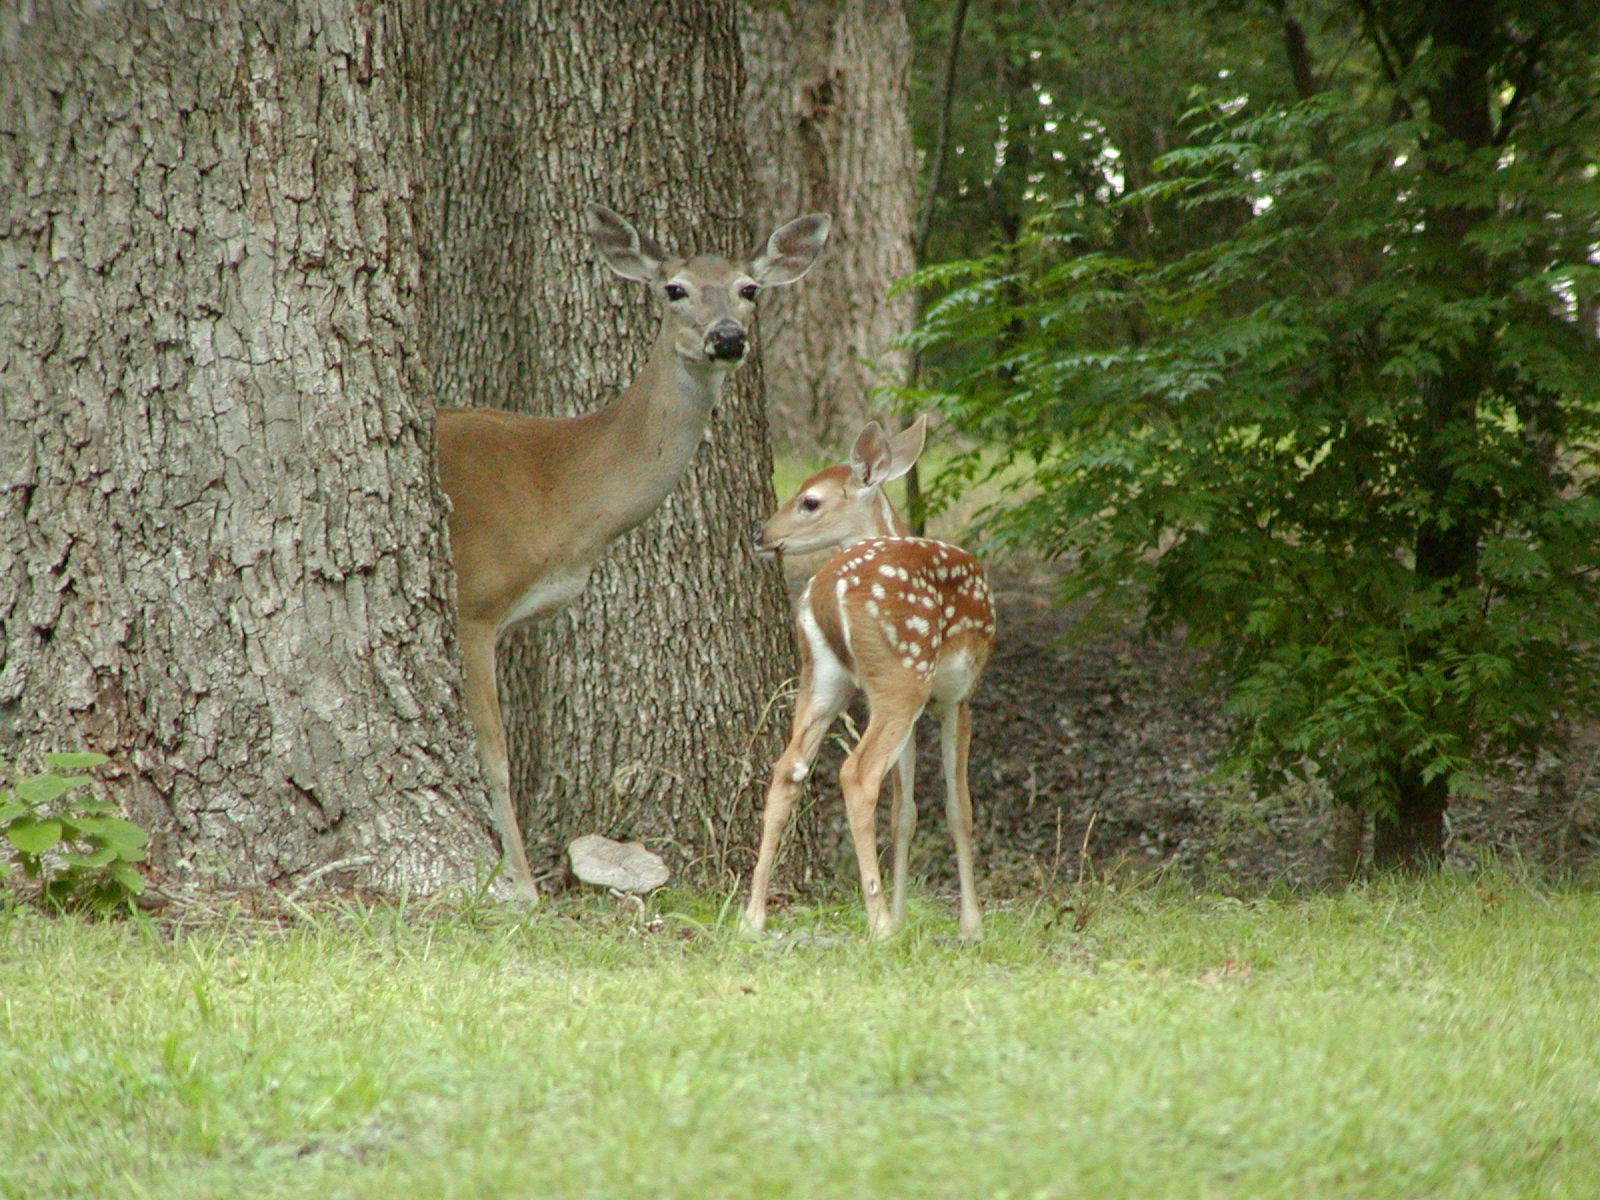 I Found a Baby Deer/Bird/etc., What Should I Do? | Wild Wonderings